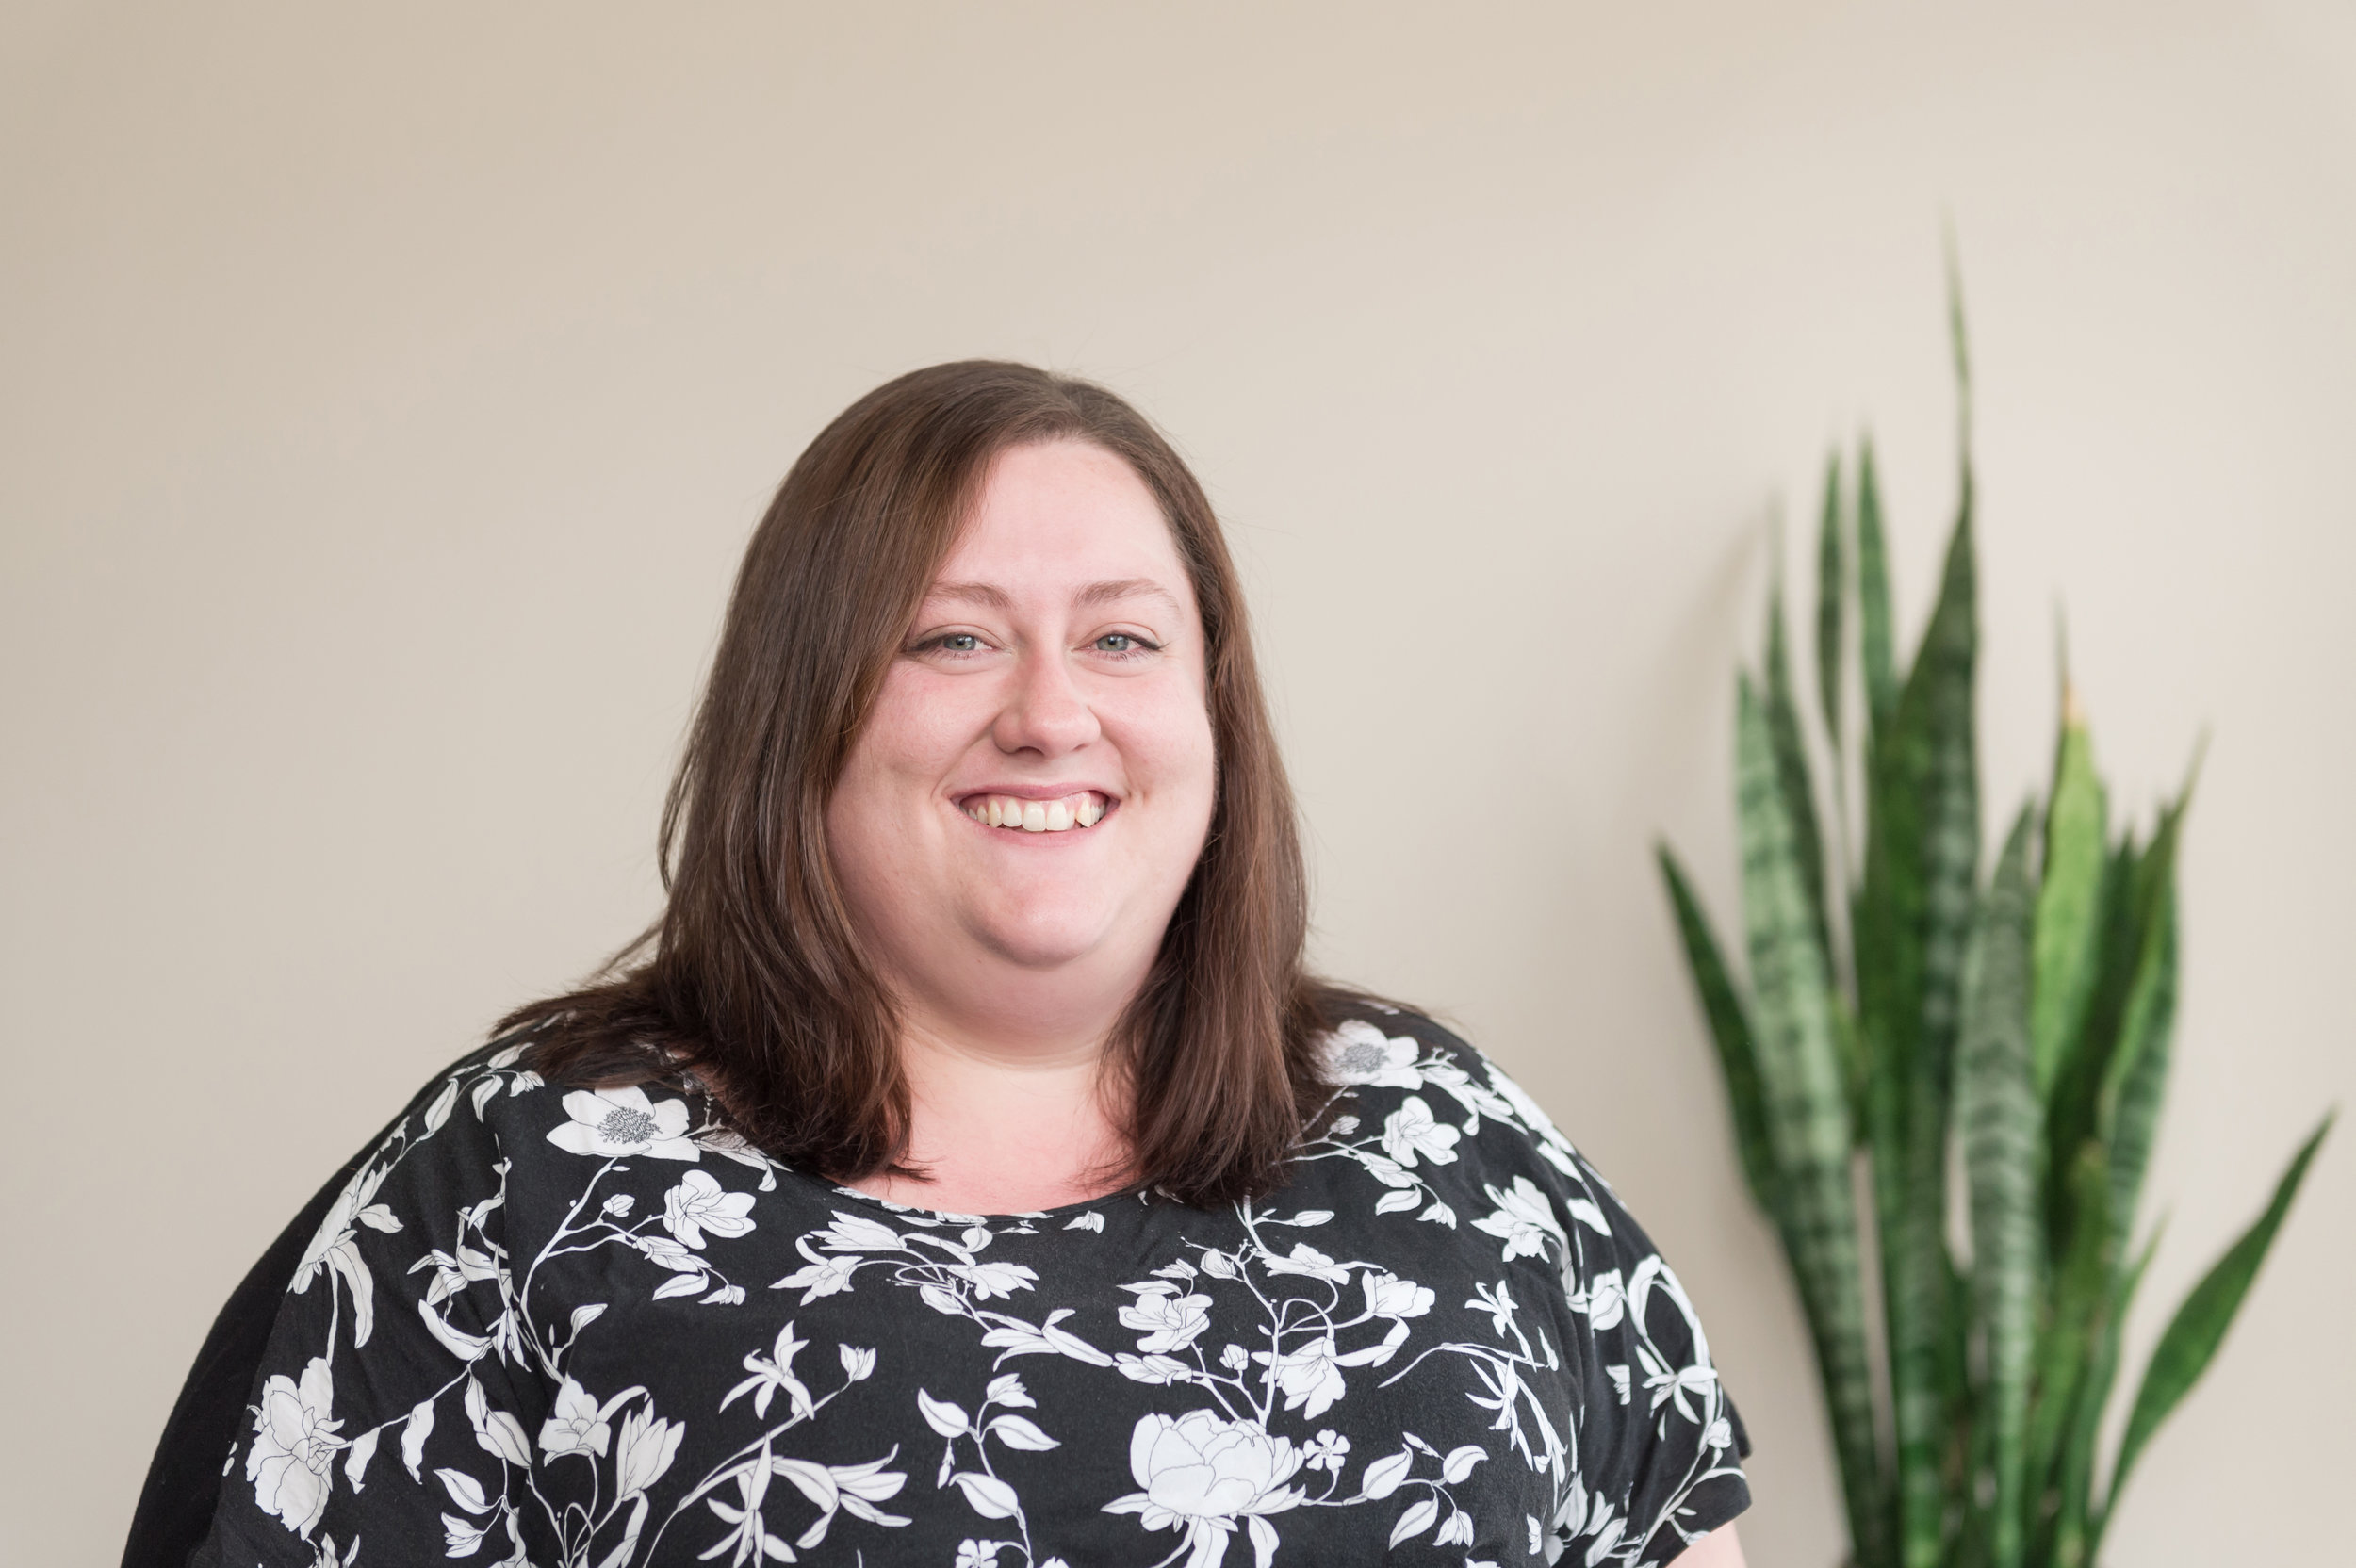 MALLISSA WHITMARSH Reception / Administration - Ceduna   Mallissa started at Letcher Moroney in July 2018 as part of the acquisition of Phill Stevens & Associates and has experience in administration and sales within the media industry, previously holding positions within Fairfax Regional Media. Mallissa holds a Certificate 3 in Business Administration.